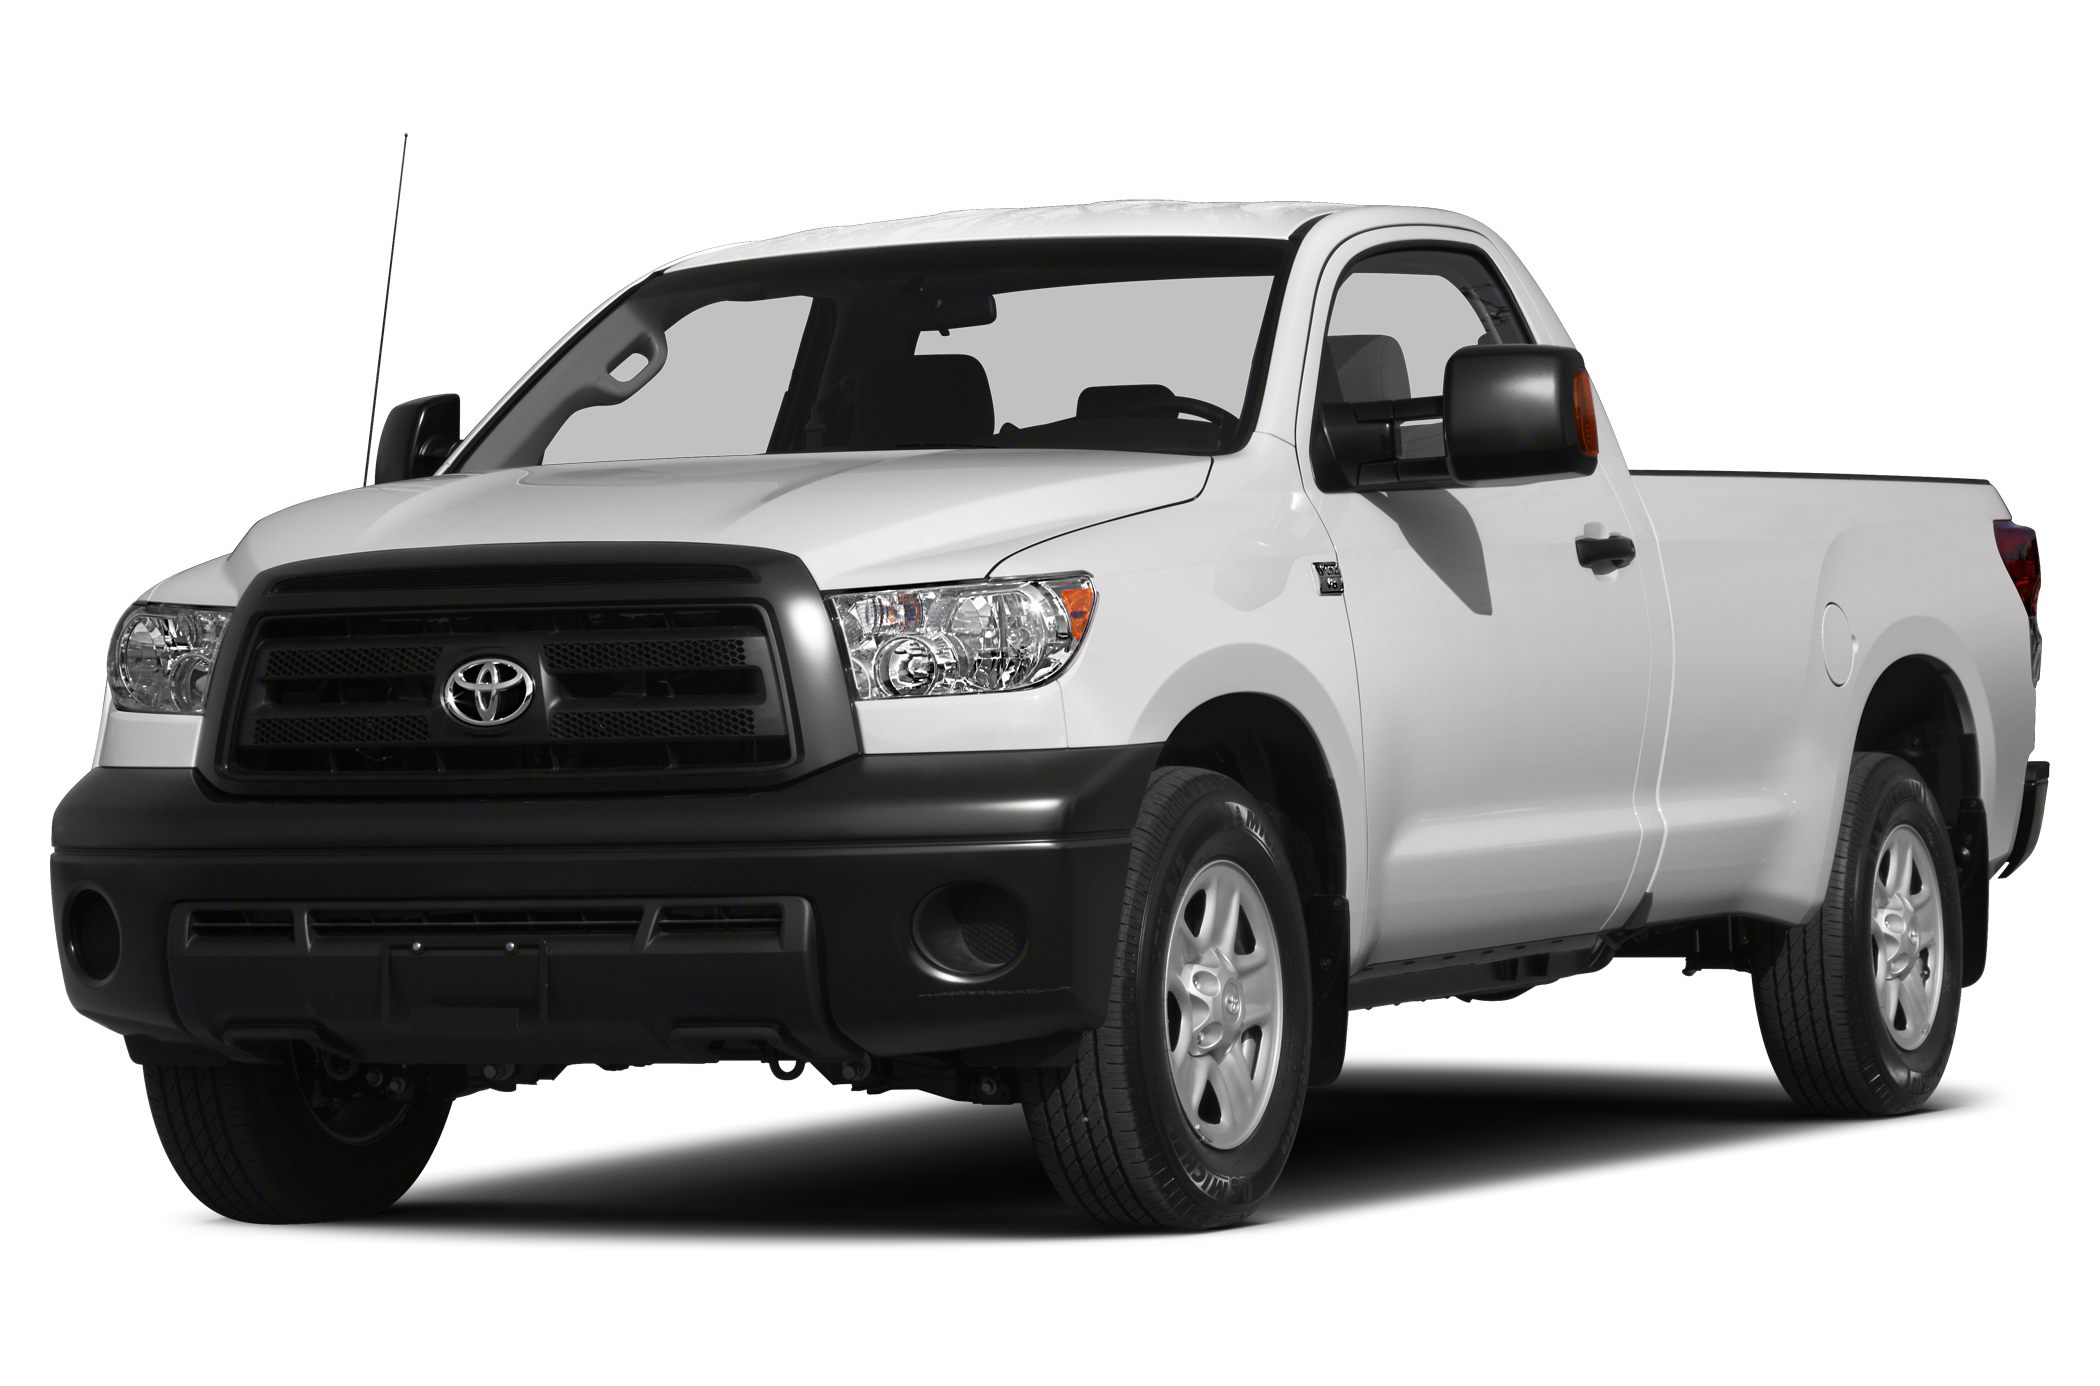 2013 Toyota Tundra Grade Crew Cab Pickup for sale in Bakersfield for $38,758 with 29,998 miles.